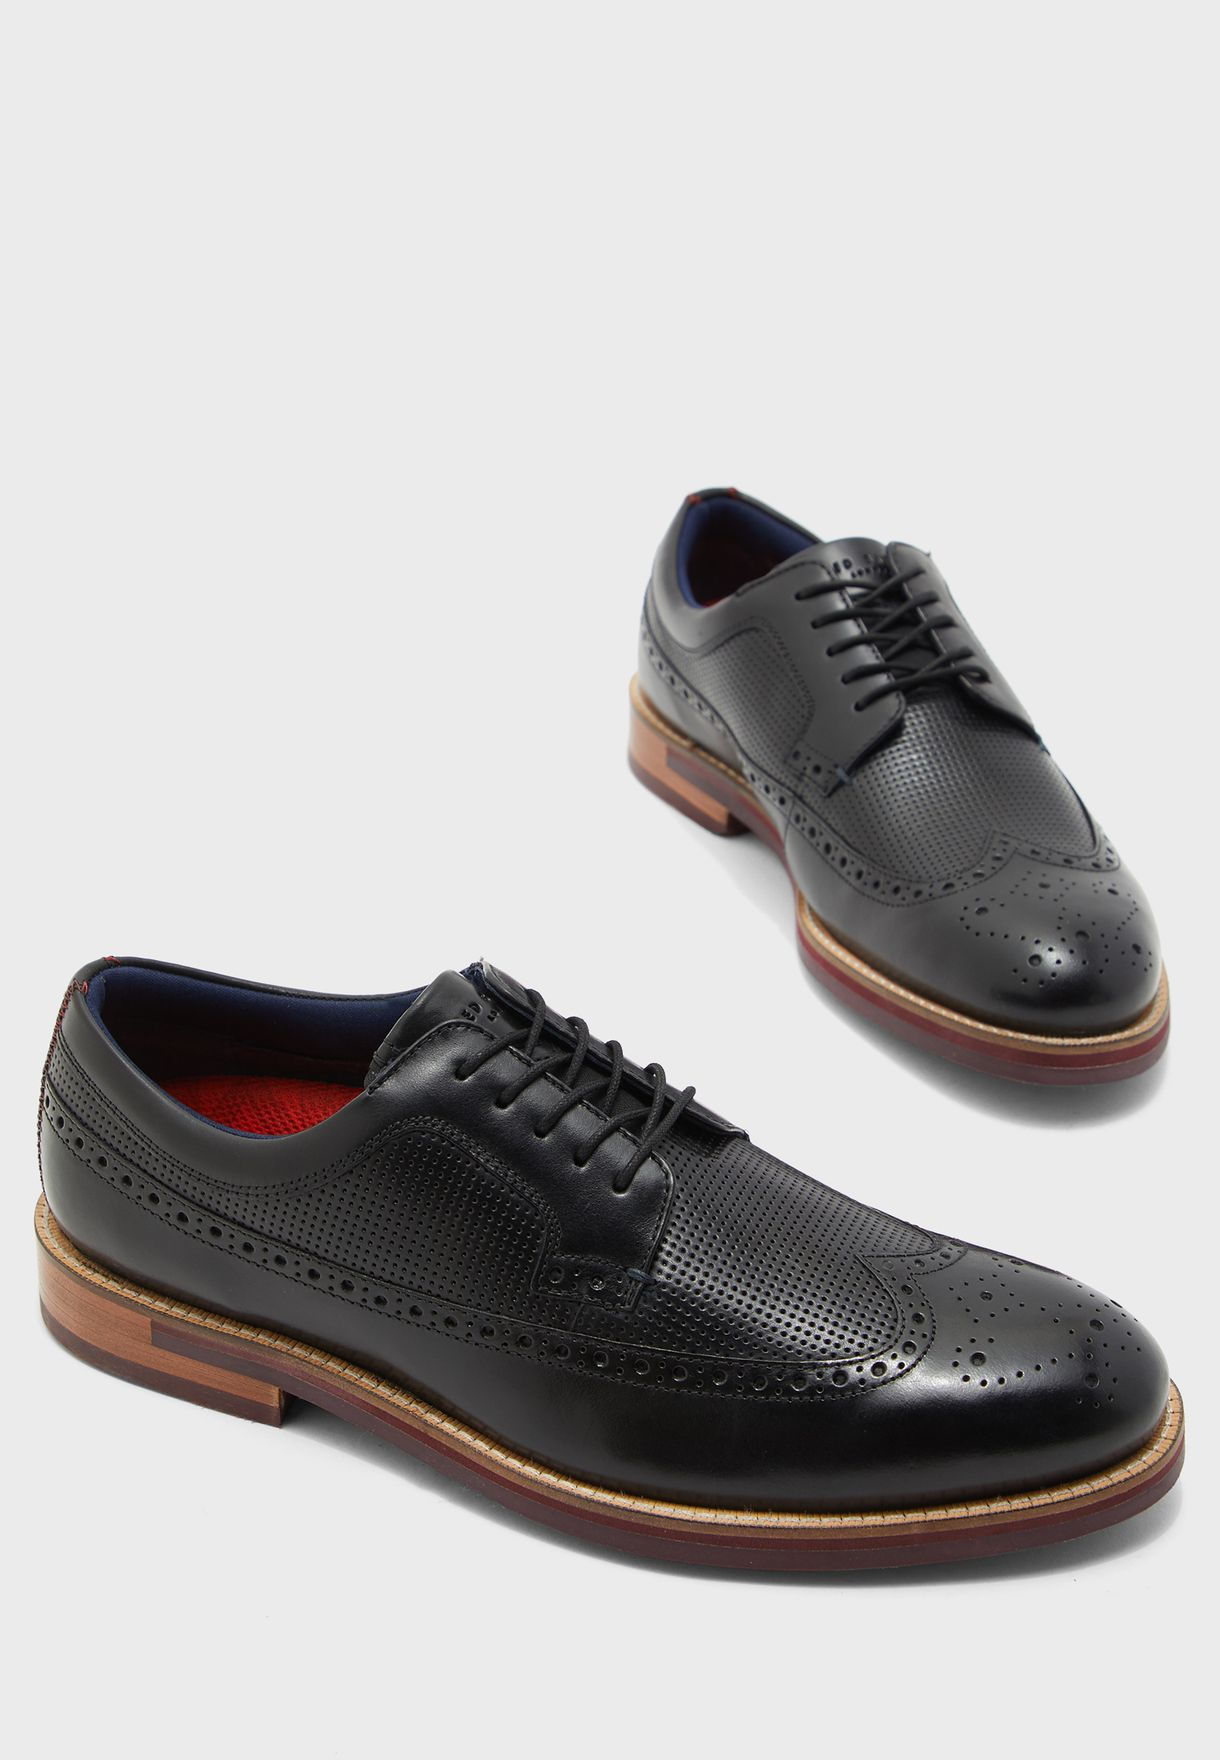 Dylunn Brogue Lace ups